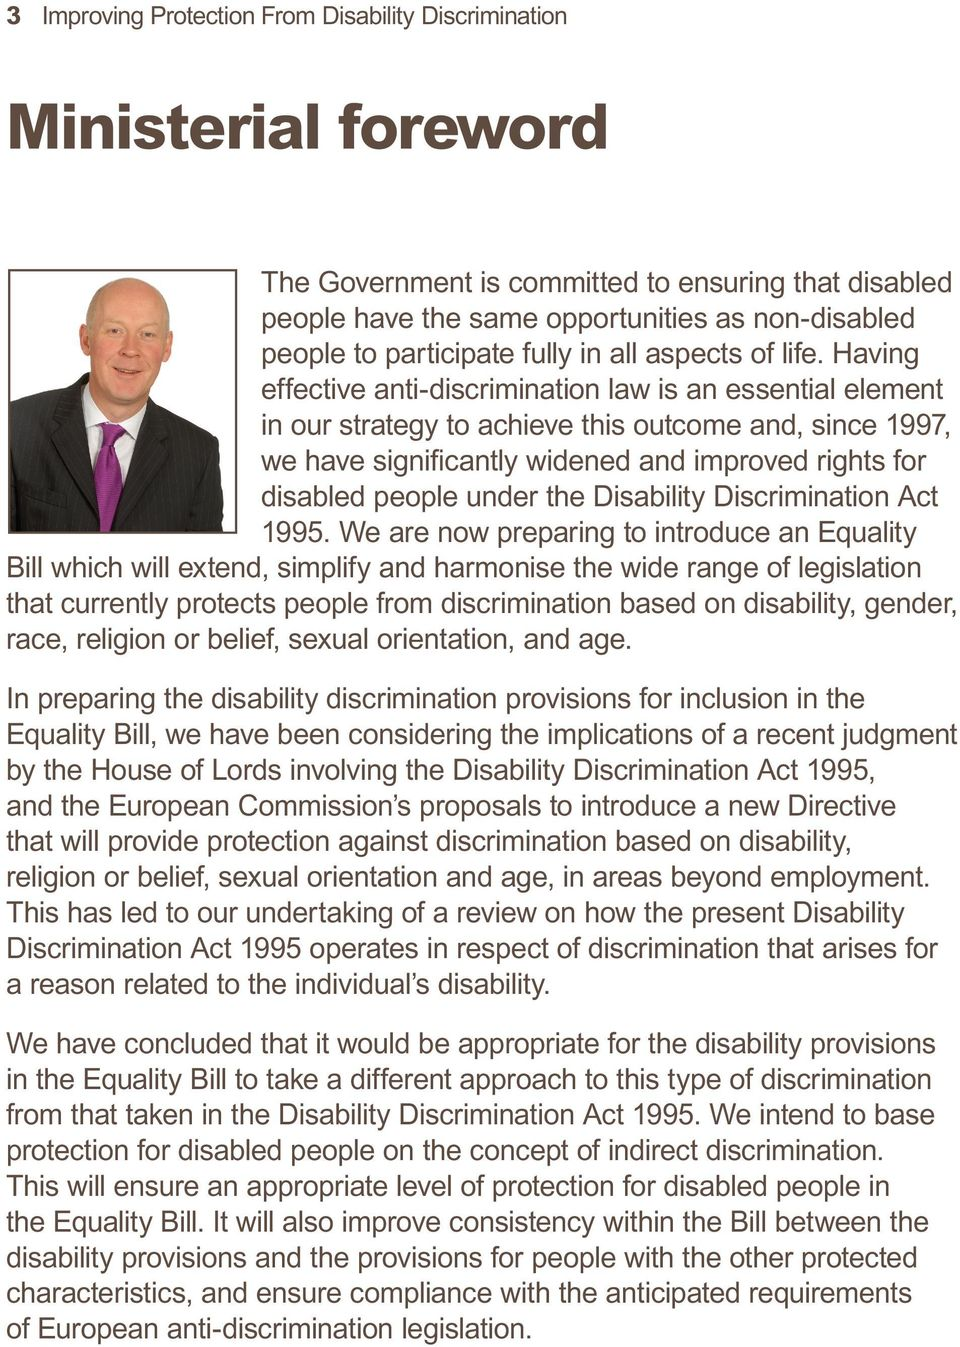 Having effective anti-discrimination law is an essential element in our strategy to achieve this outcome and, since 1997, we have significantly widened and improved rights for disabled people under